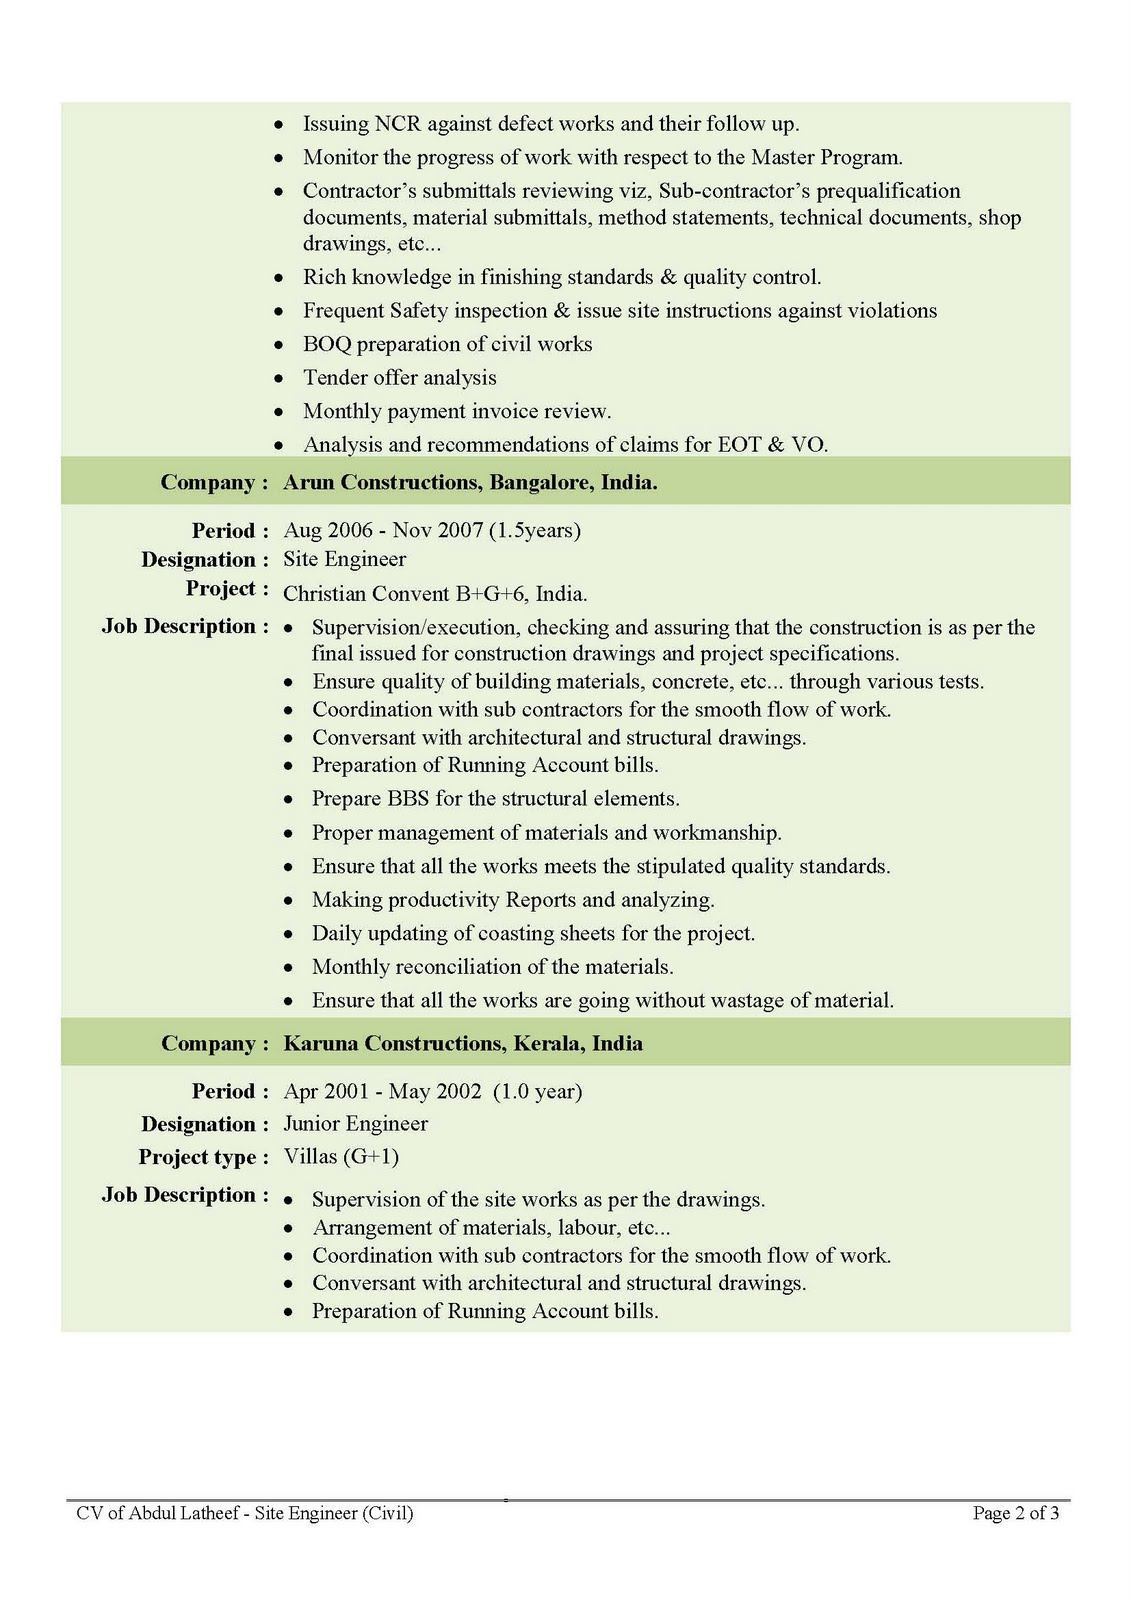 Civil Engineering Cover Letter Help Best Resume Samples Resume Help For Civil  Engineers SlideShare Engineering CV  Civil Engineering Resumes